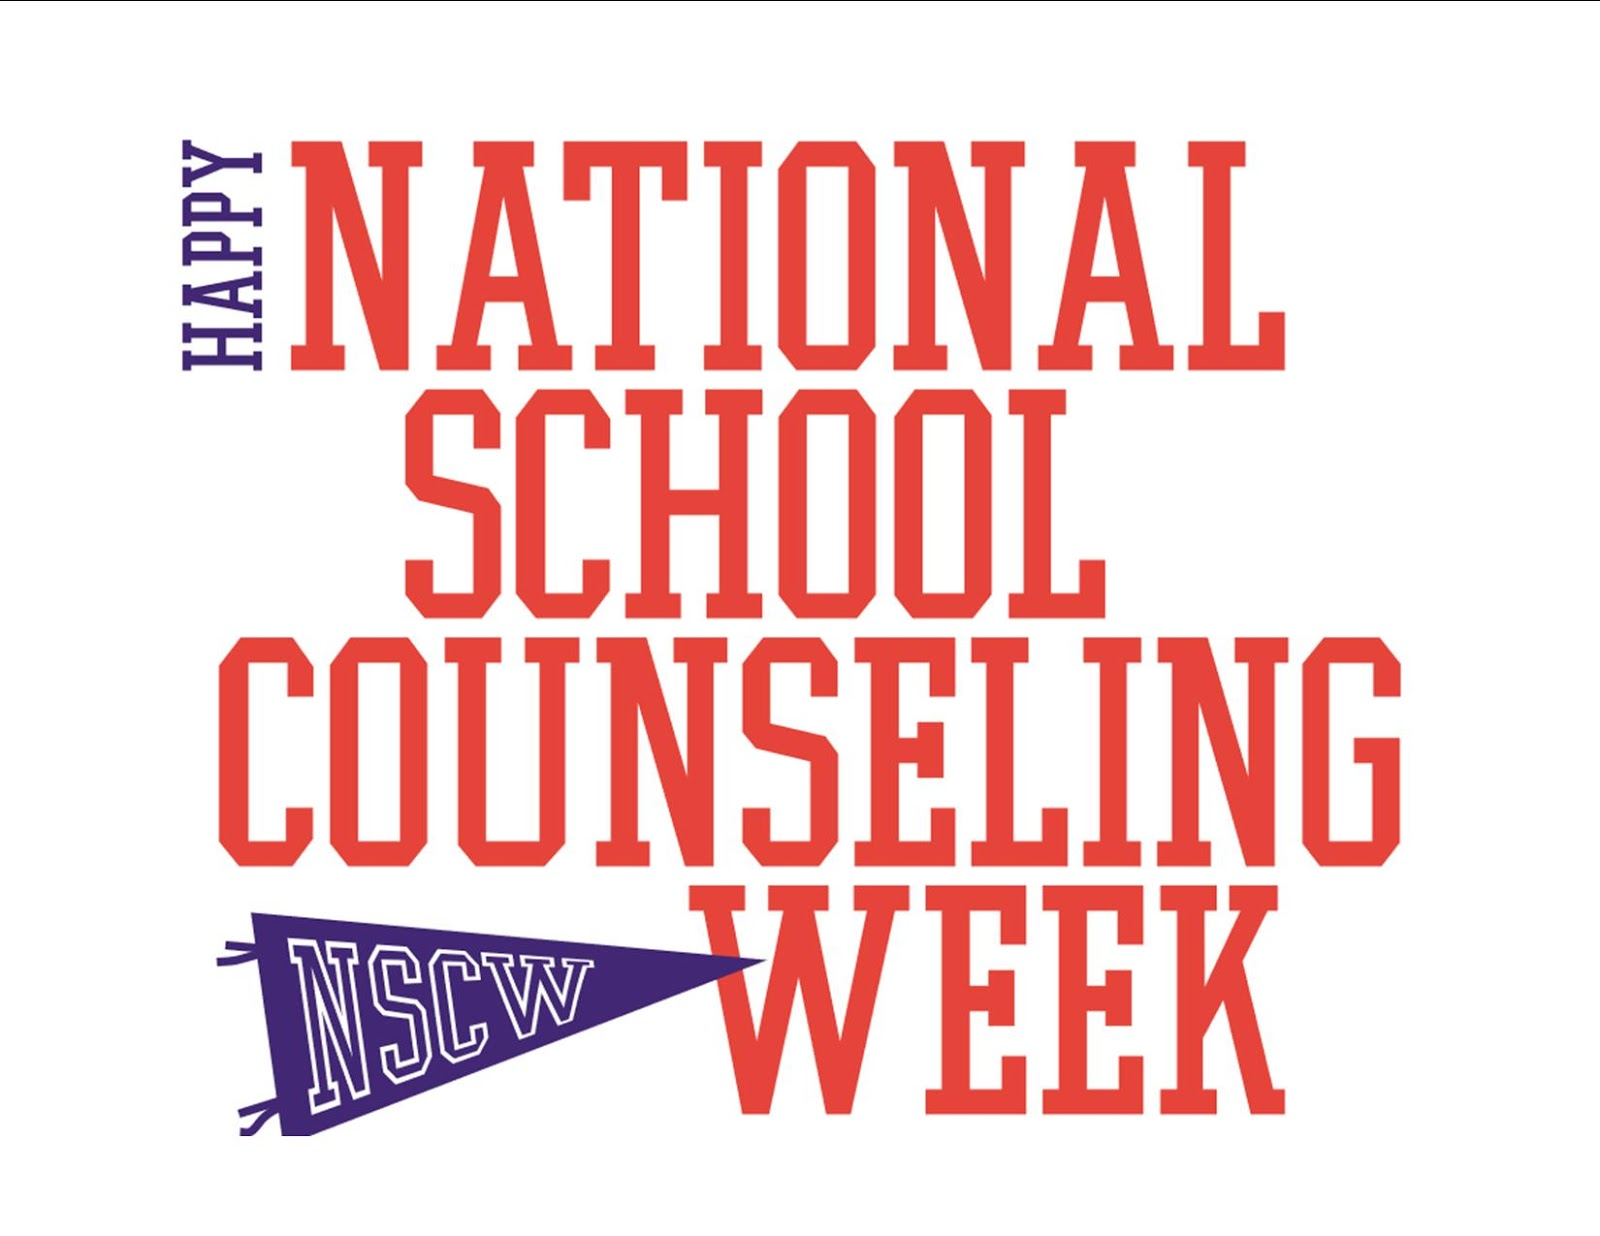 Celebrating National School Counseling Week ~ The School Zone